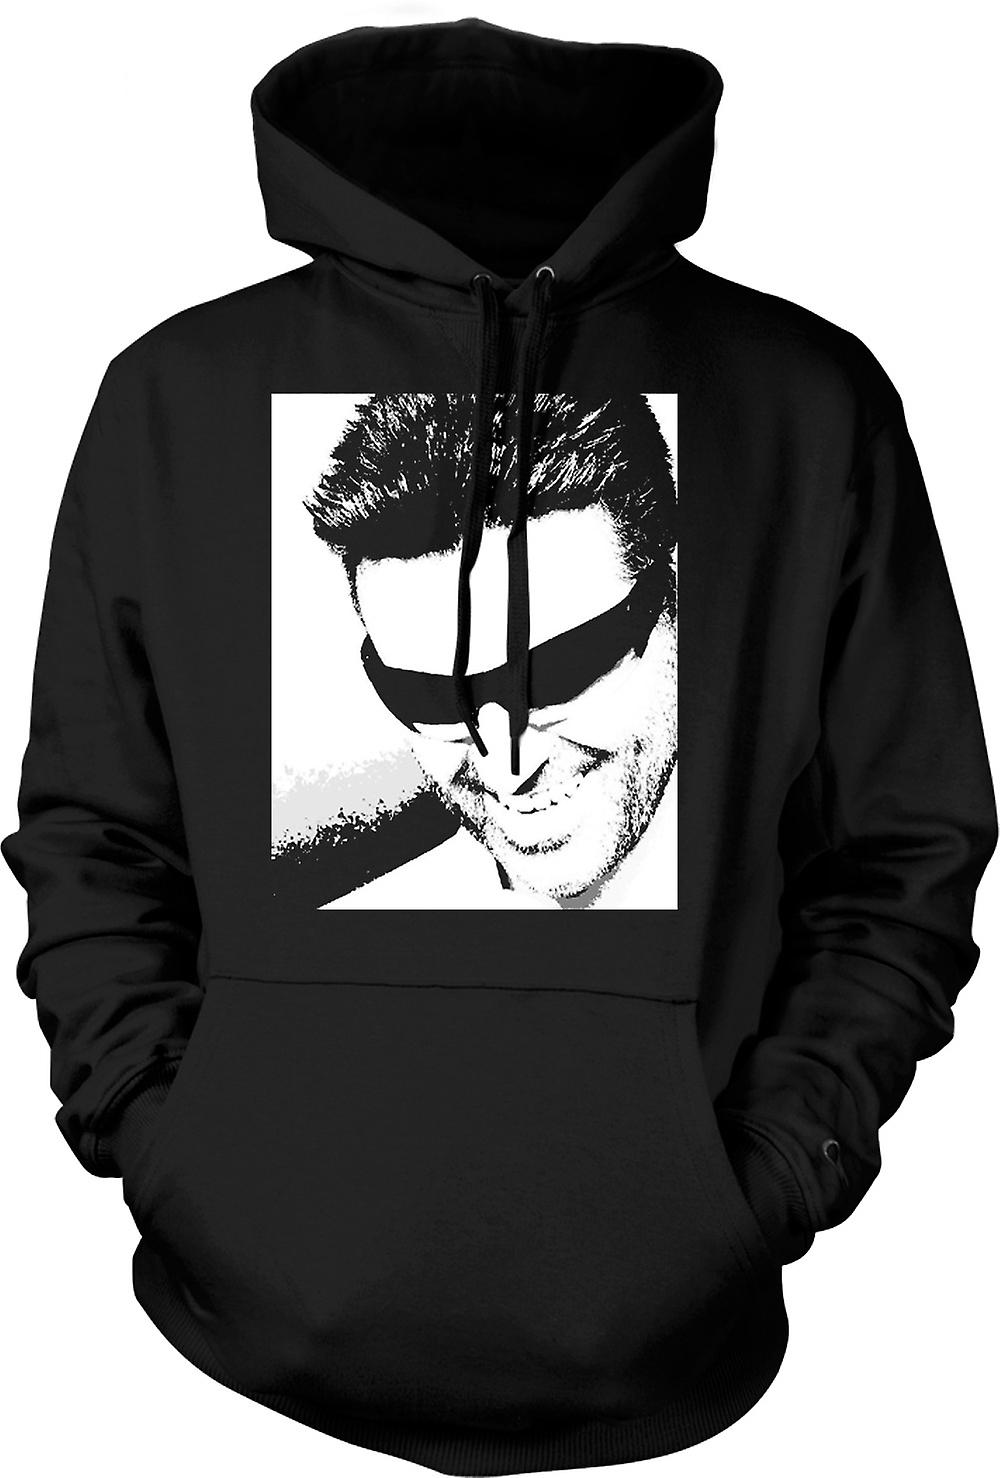 Mens Hoodie - George Michael - Pop Art - porträtt